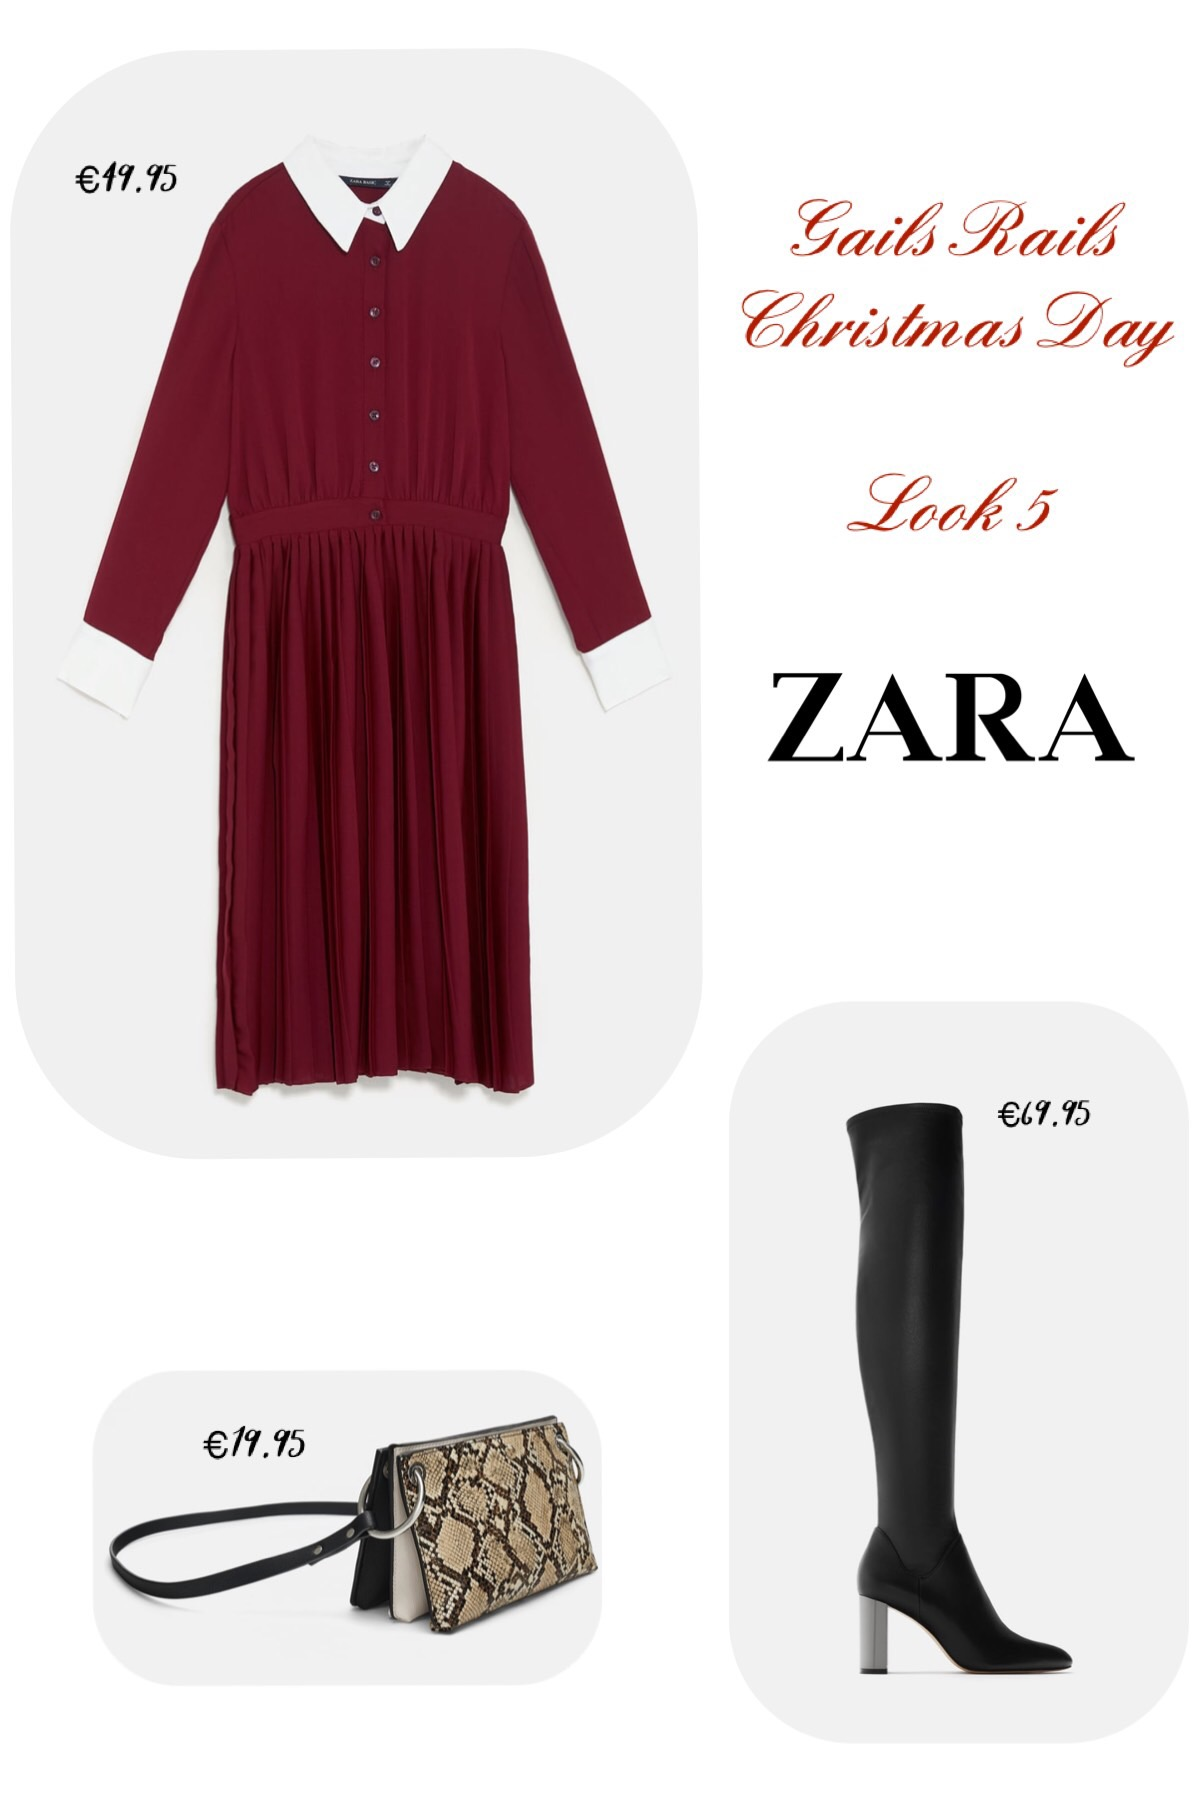 Christmas Day Looks Gails Rails